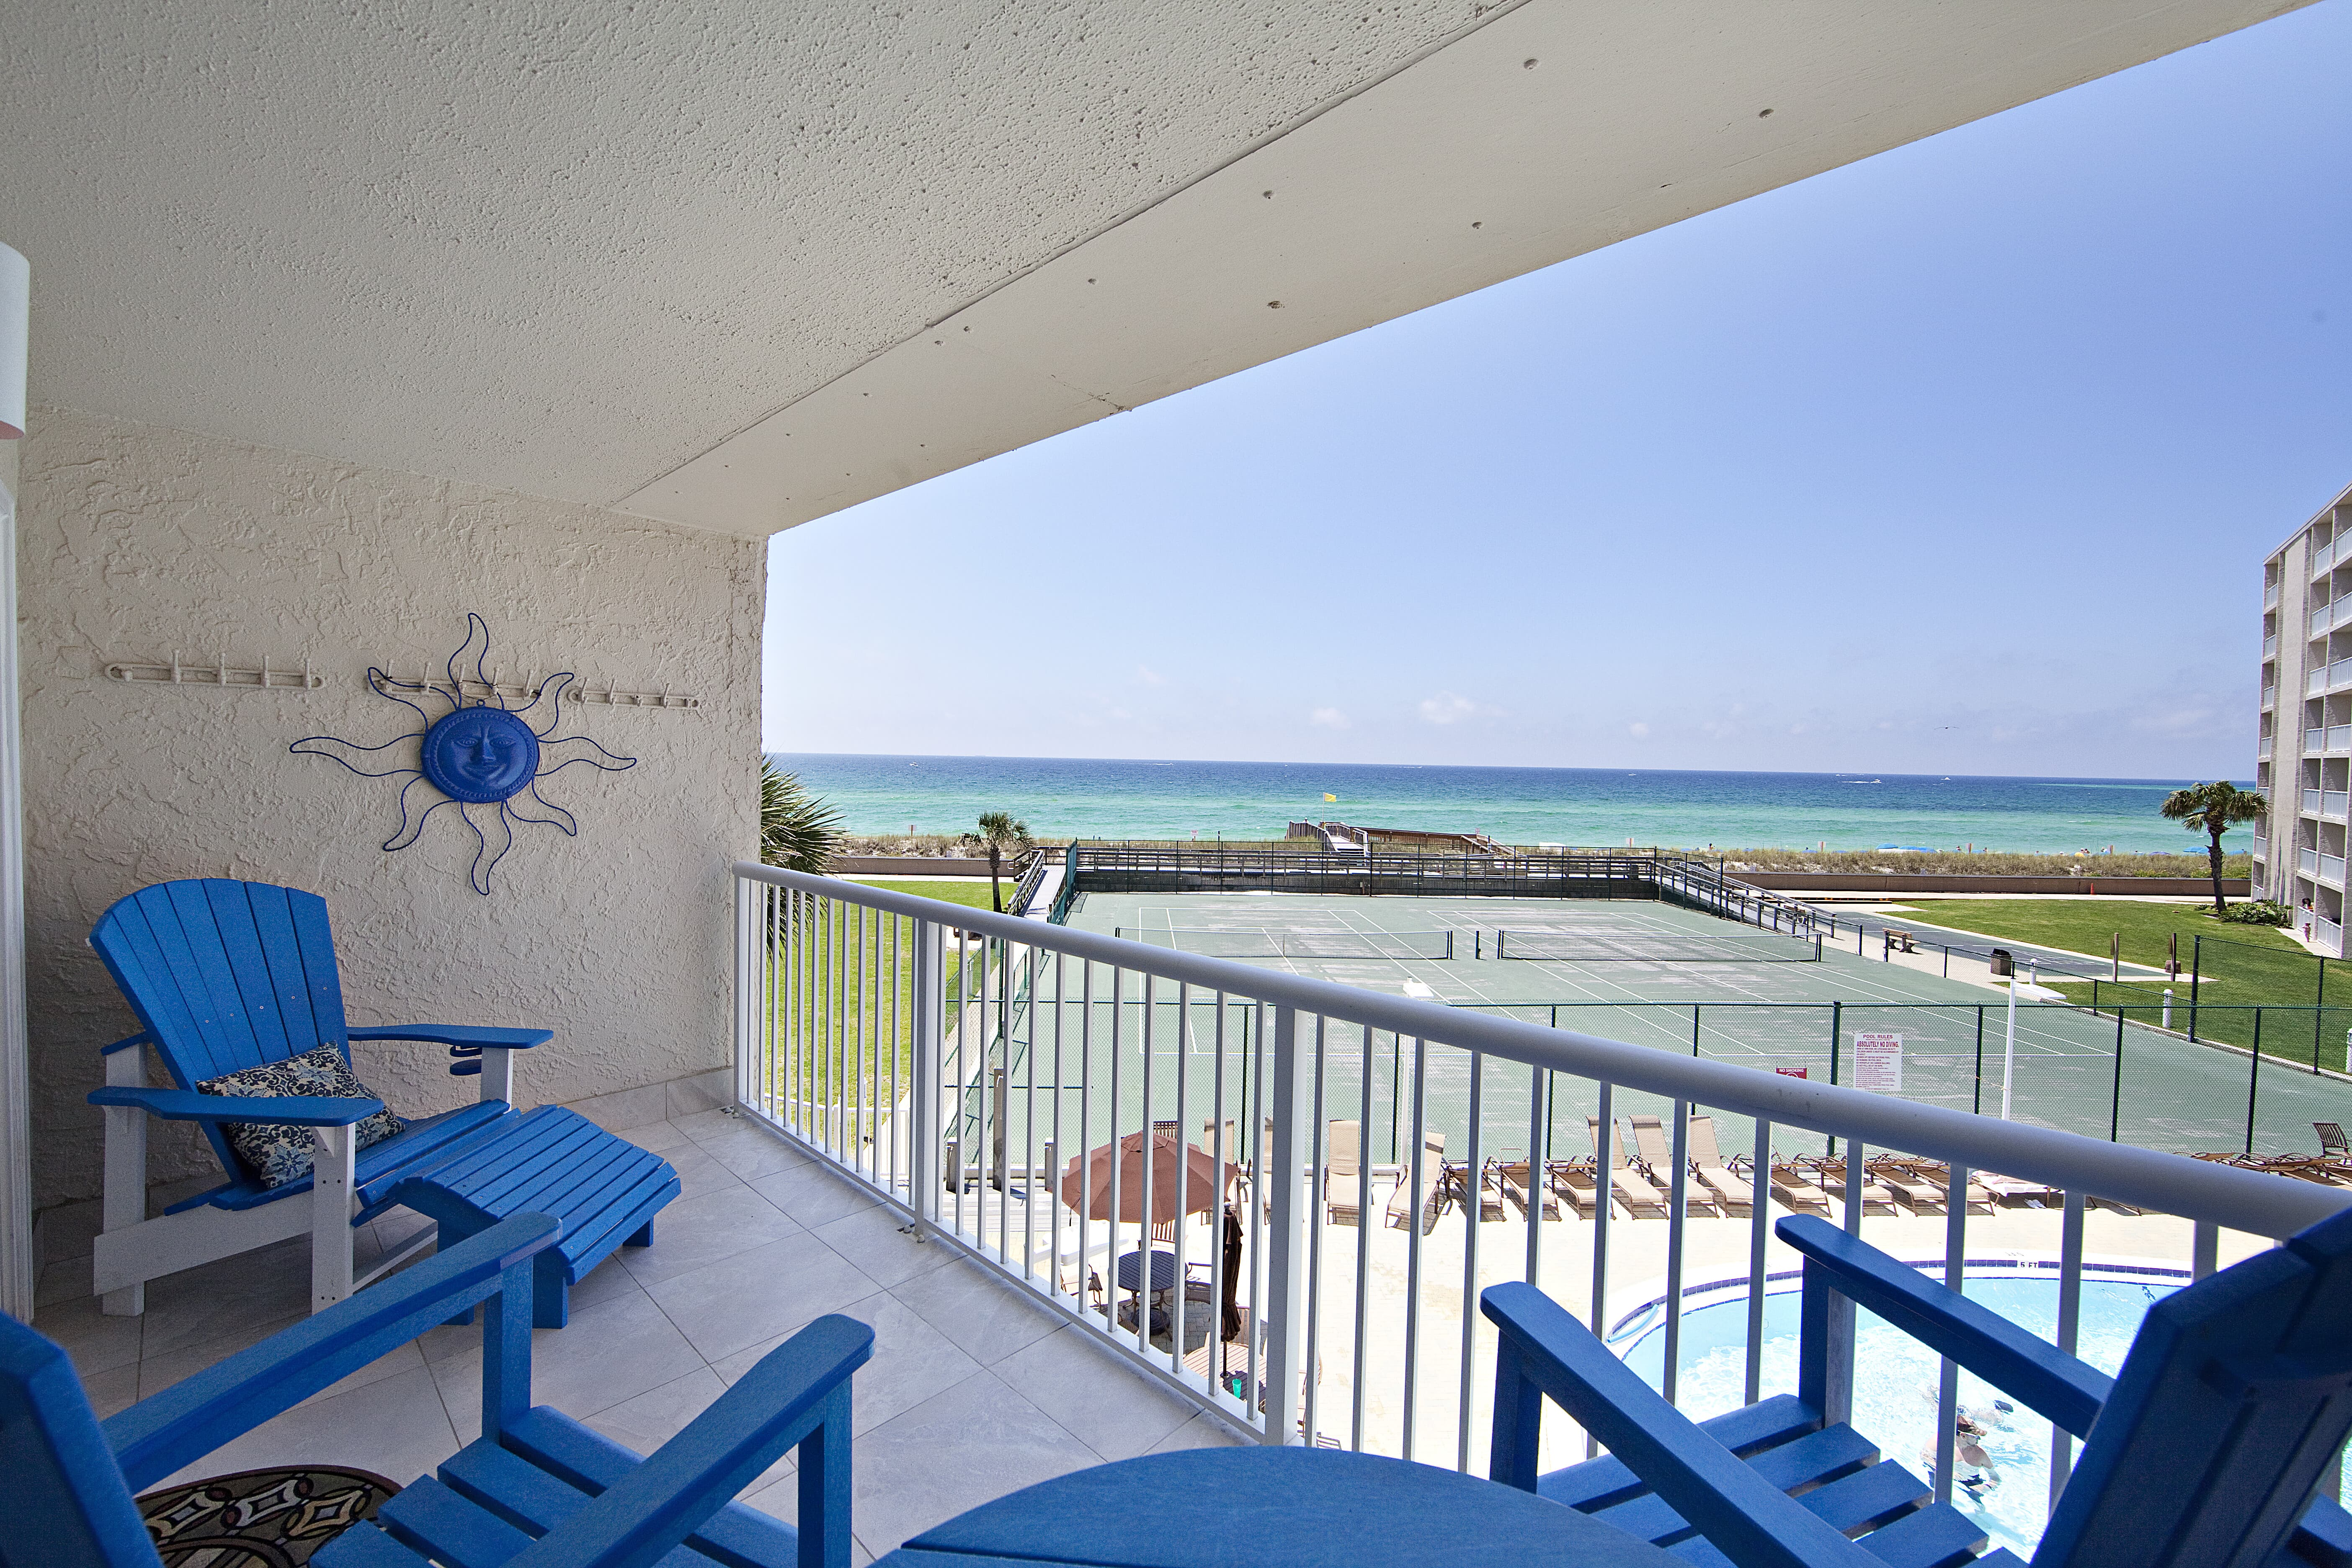 Holiday Surf & Racquet Club 316 Condo rental in Holiday Surf & Racquet Club in Destin Florida - #22